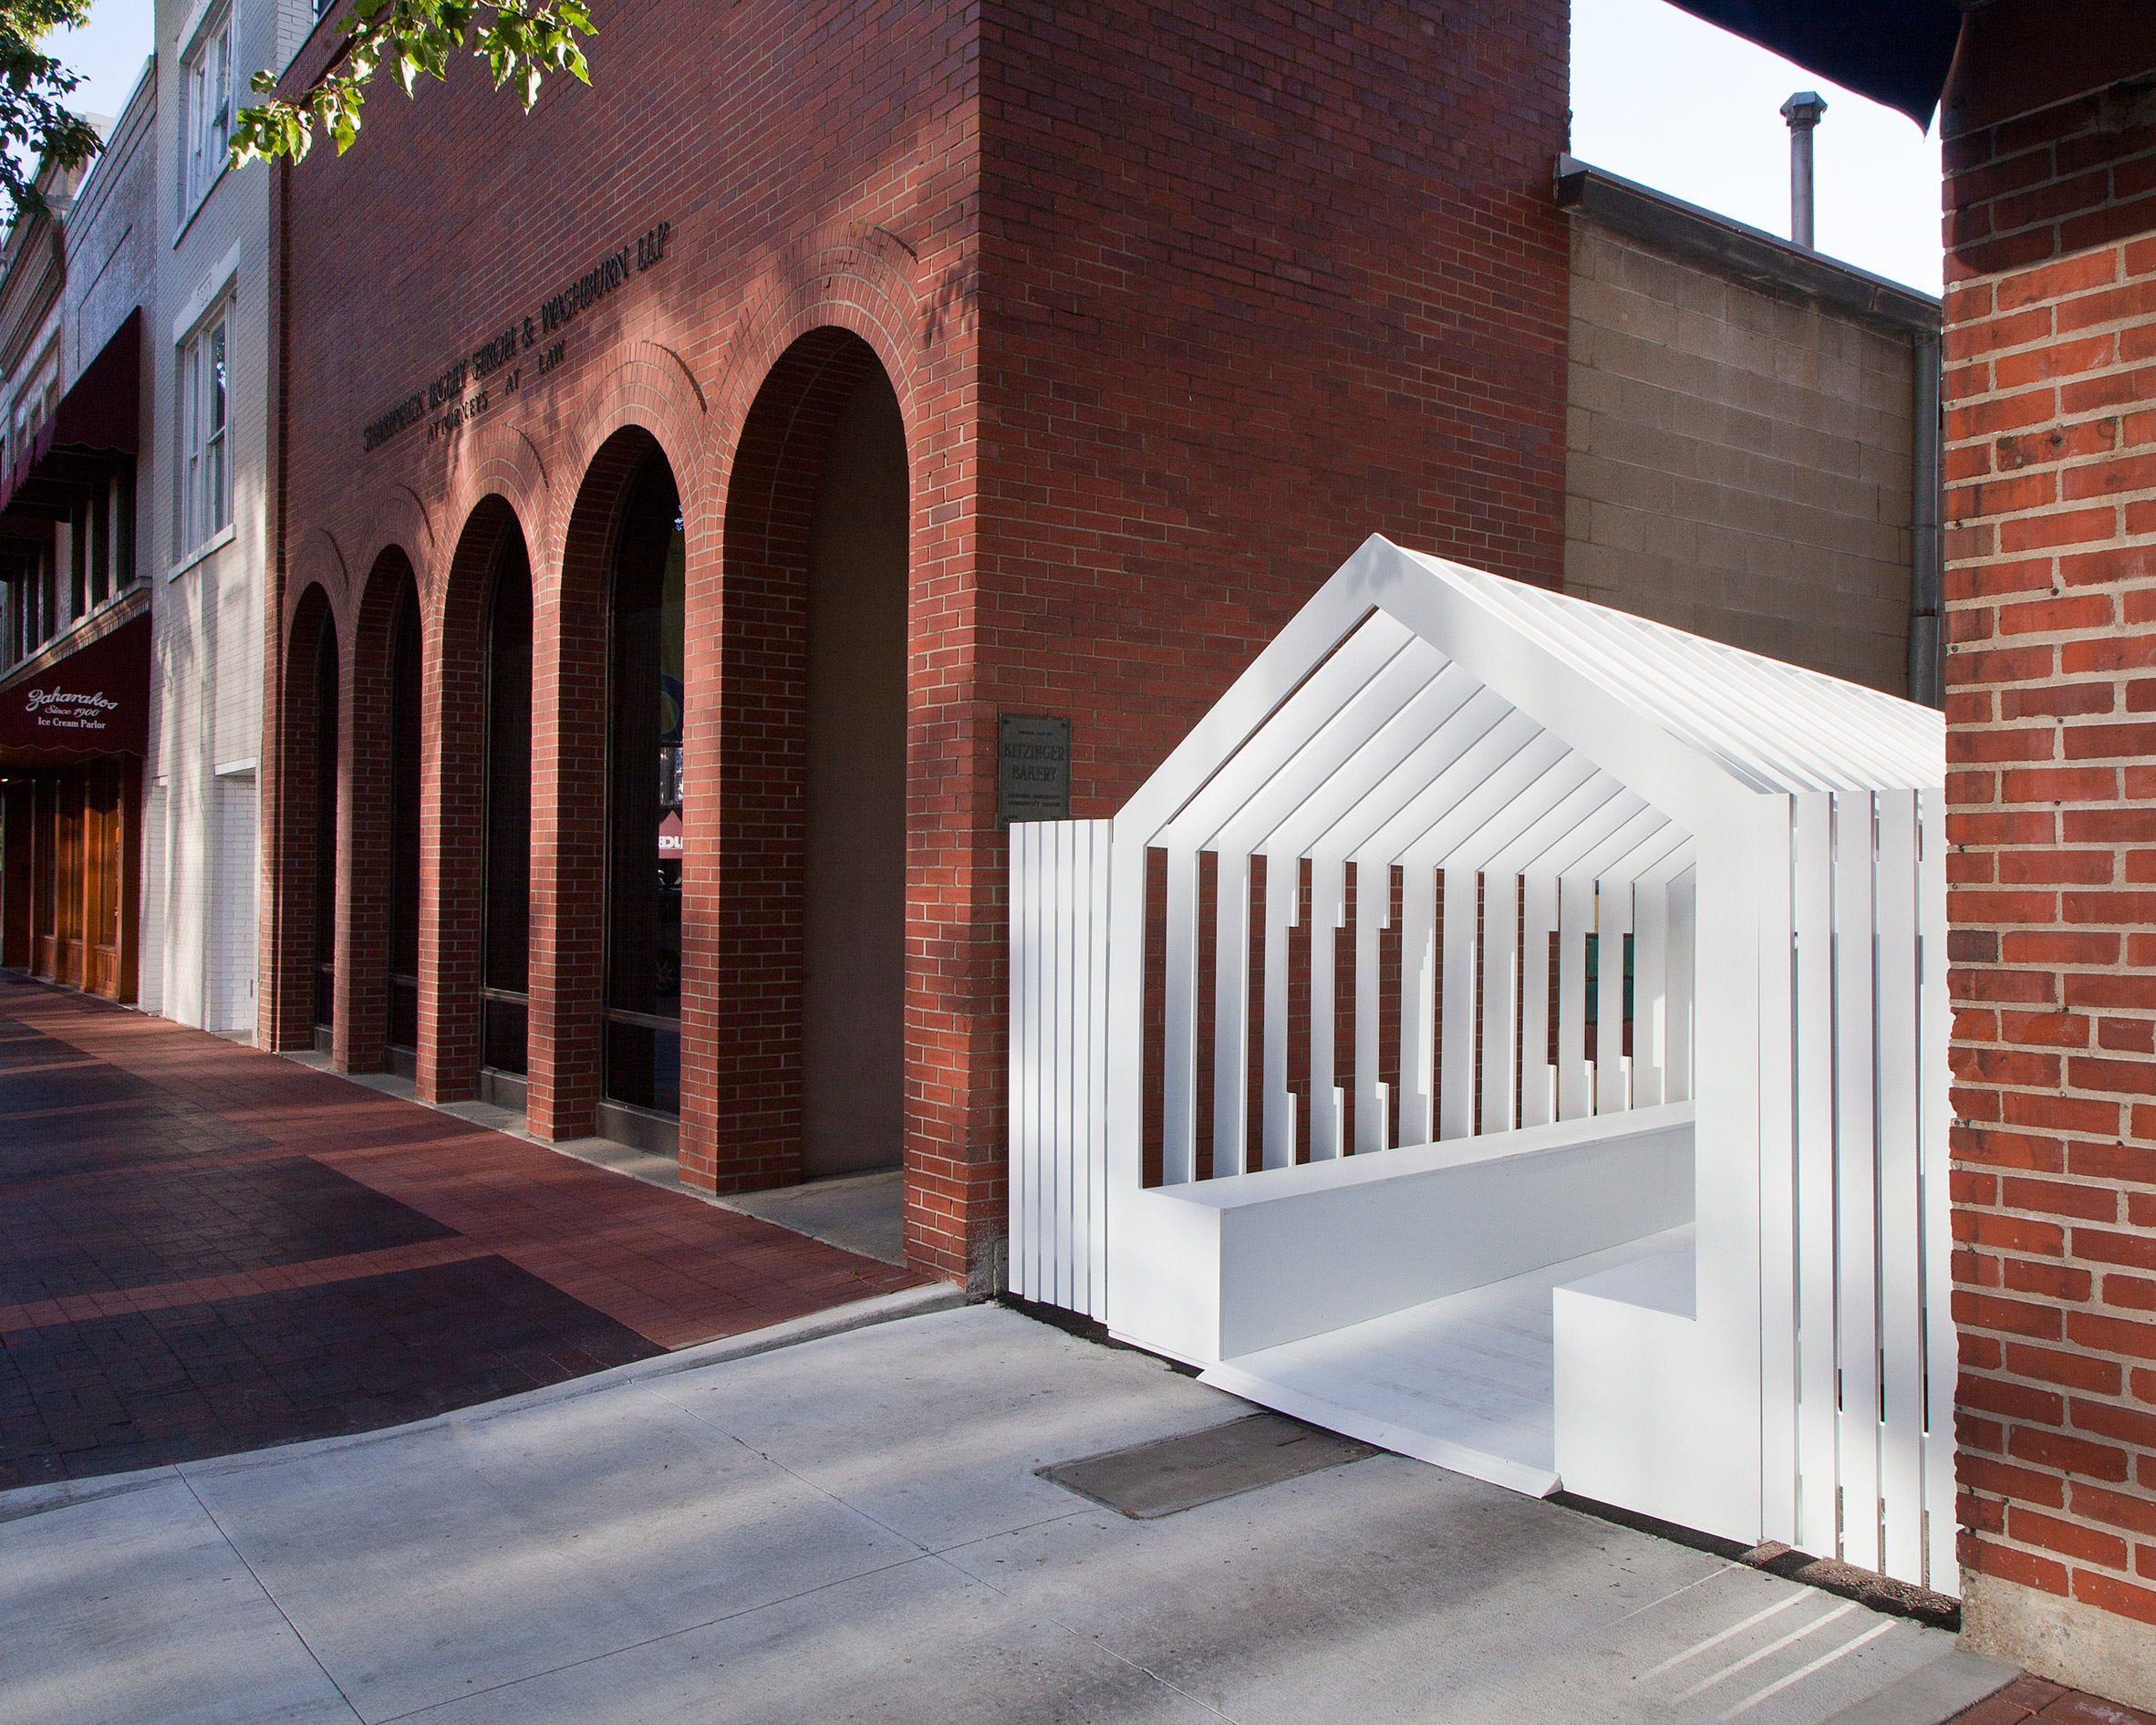 Snarkitecture and Formantasma create street installations for Exhibit Columbus